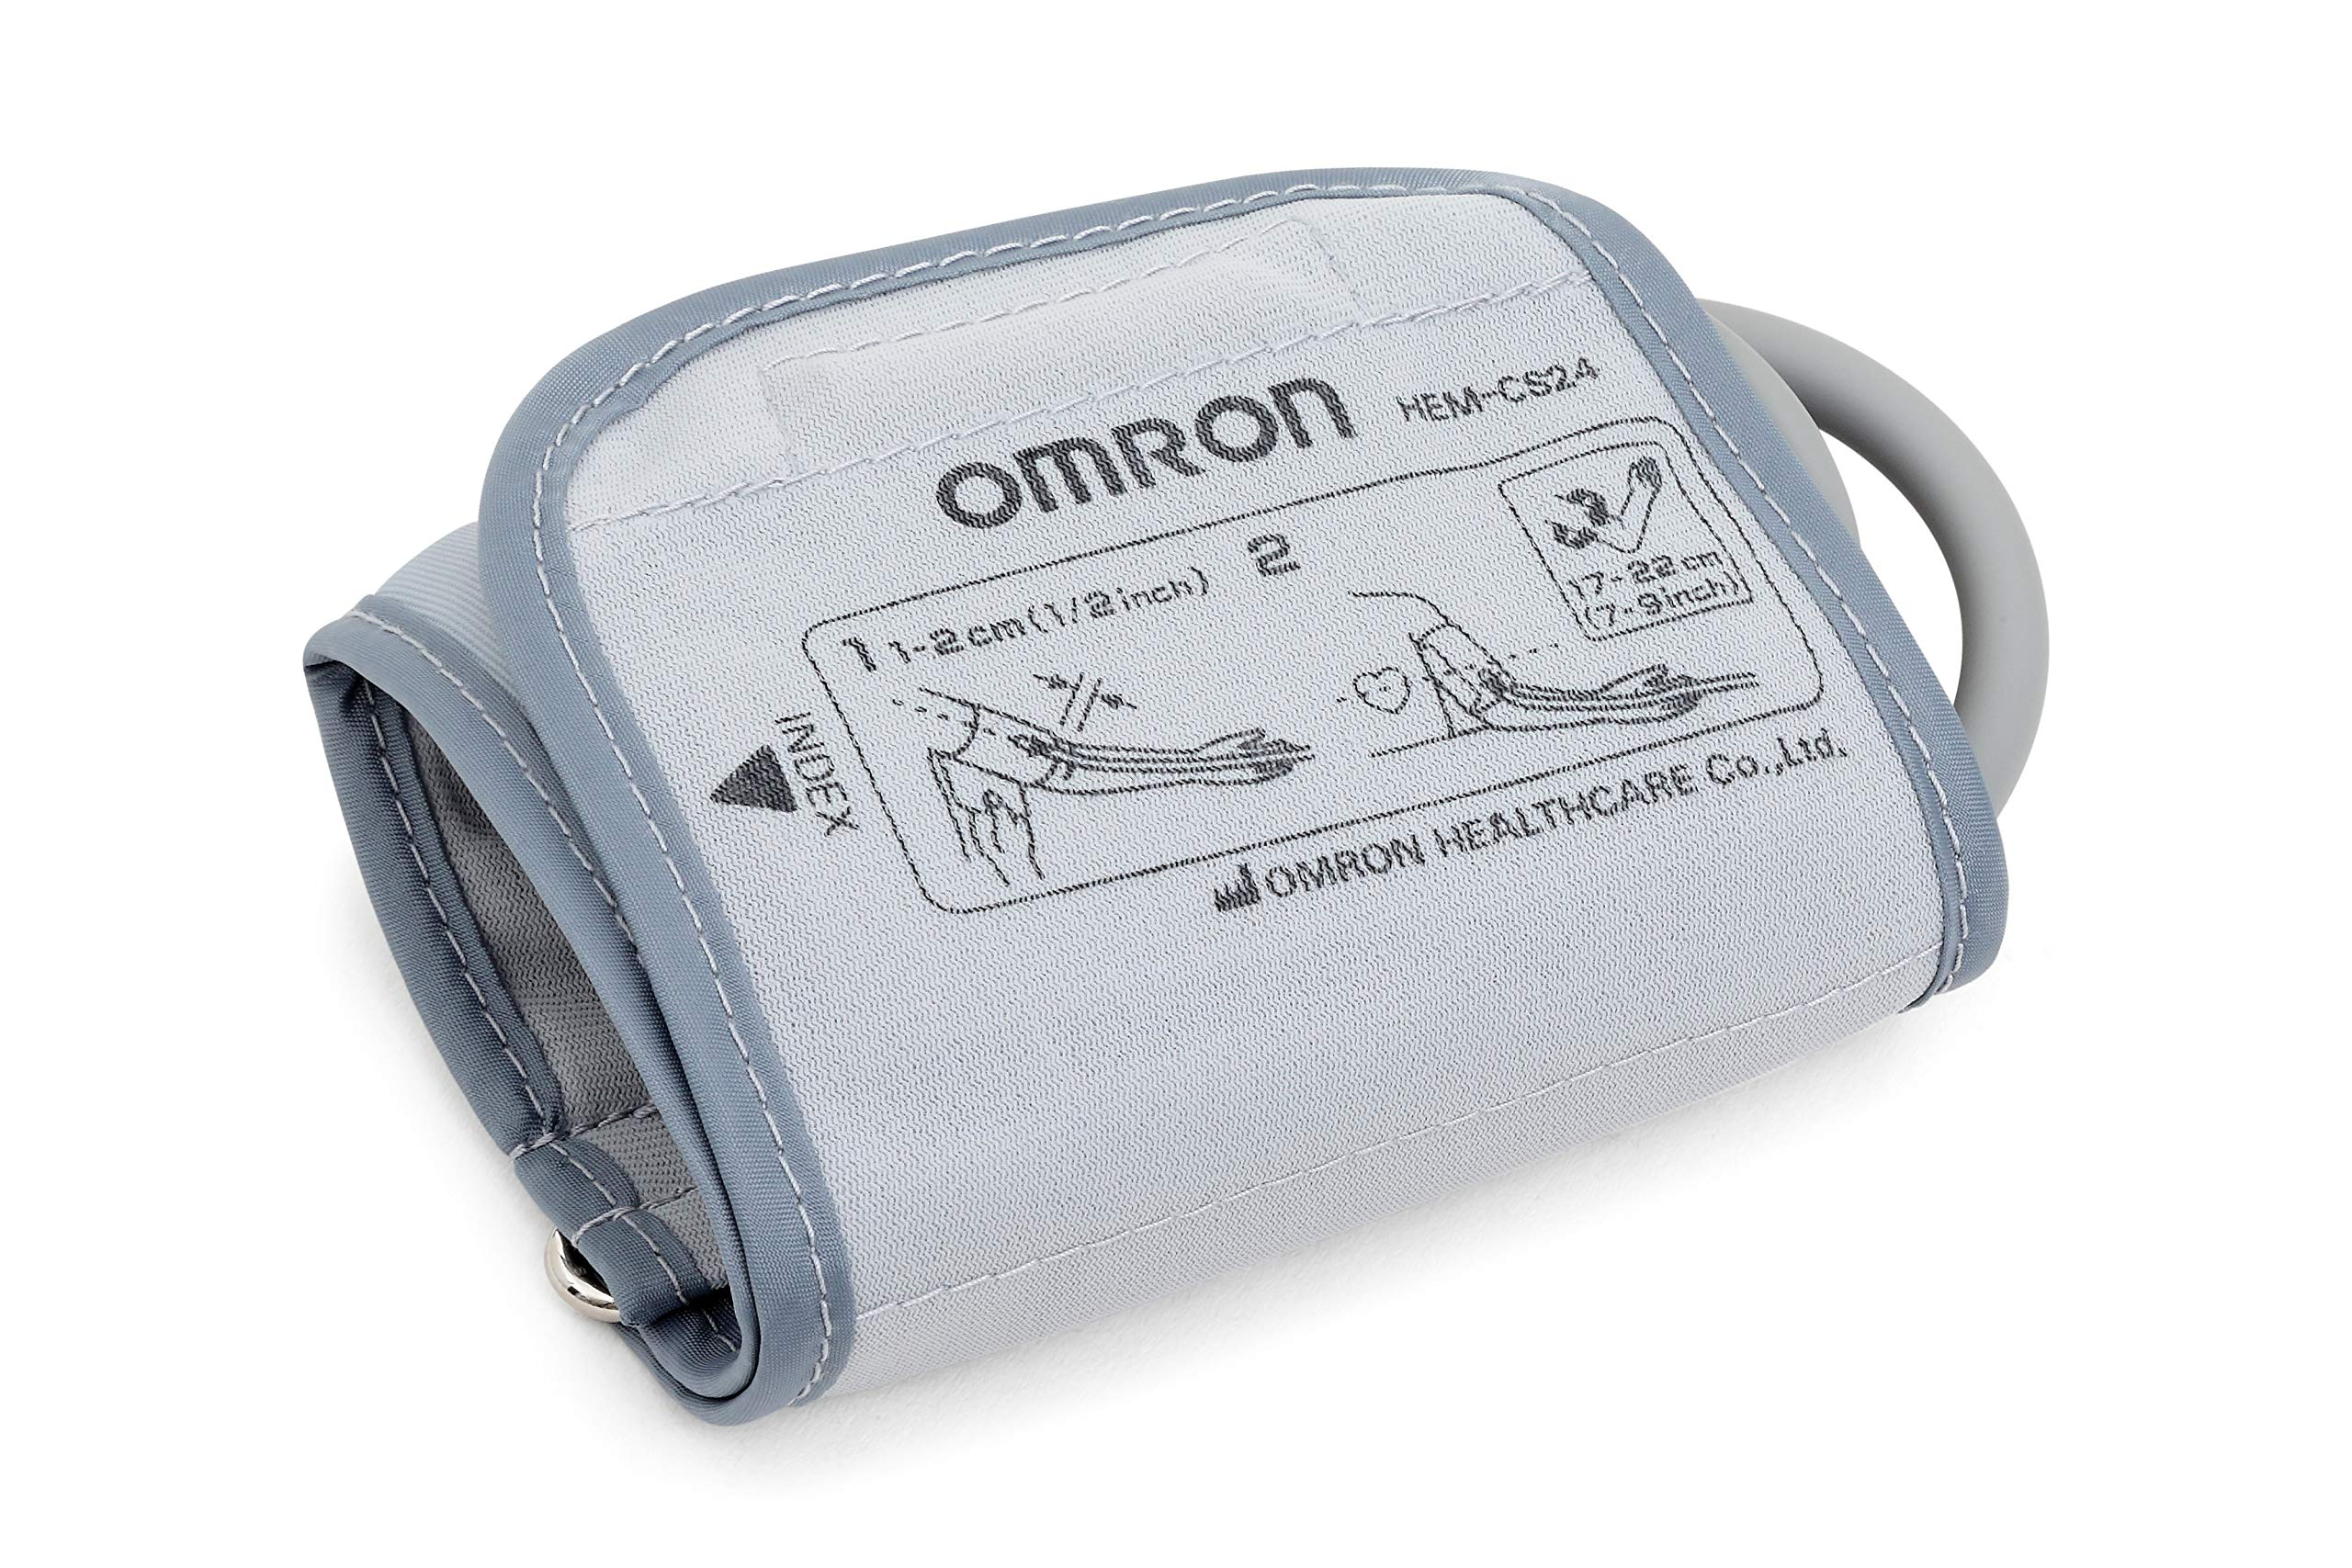 OMRON Small Cuff (17 - 22 cm) 9515373-3 for OMRON Upper Arm Blood Pressure Monitors